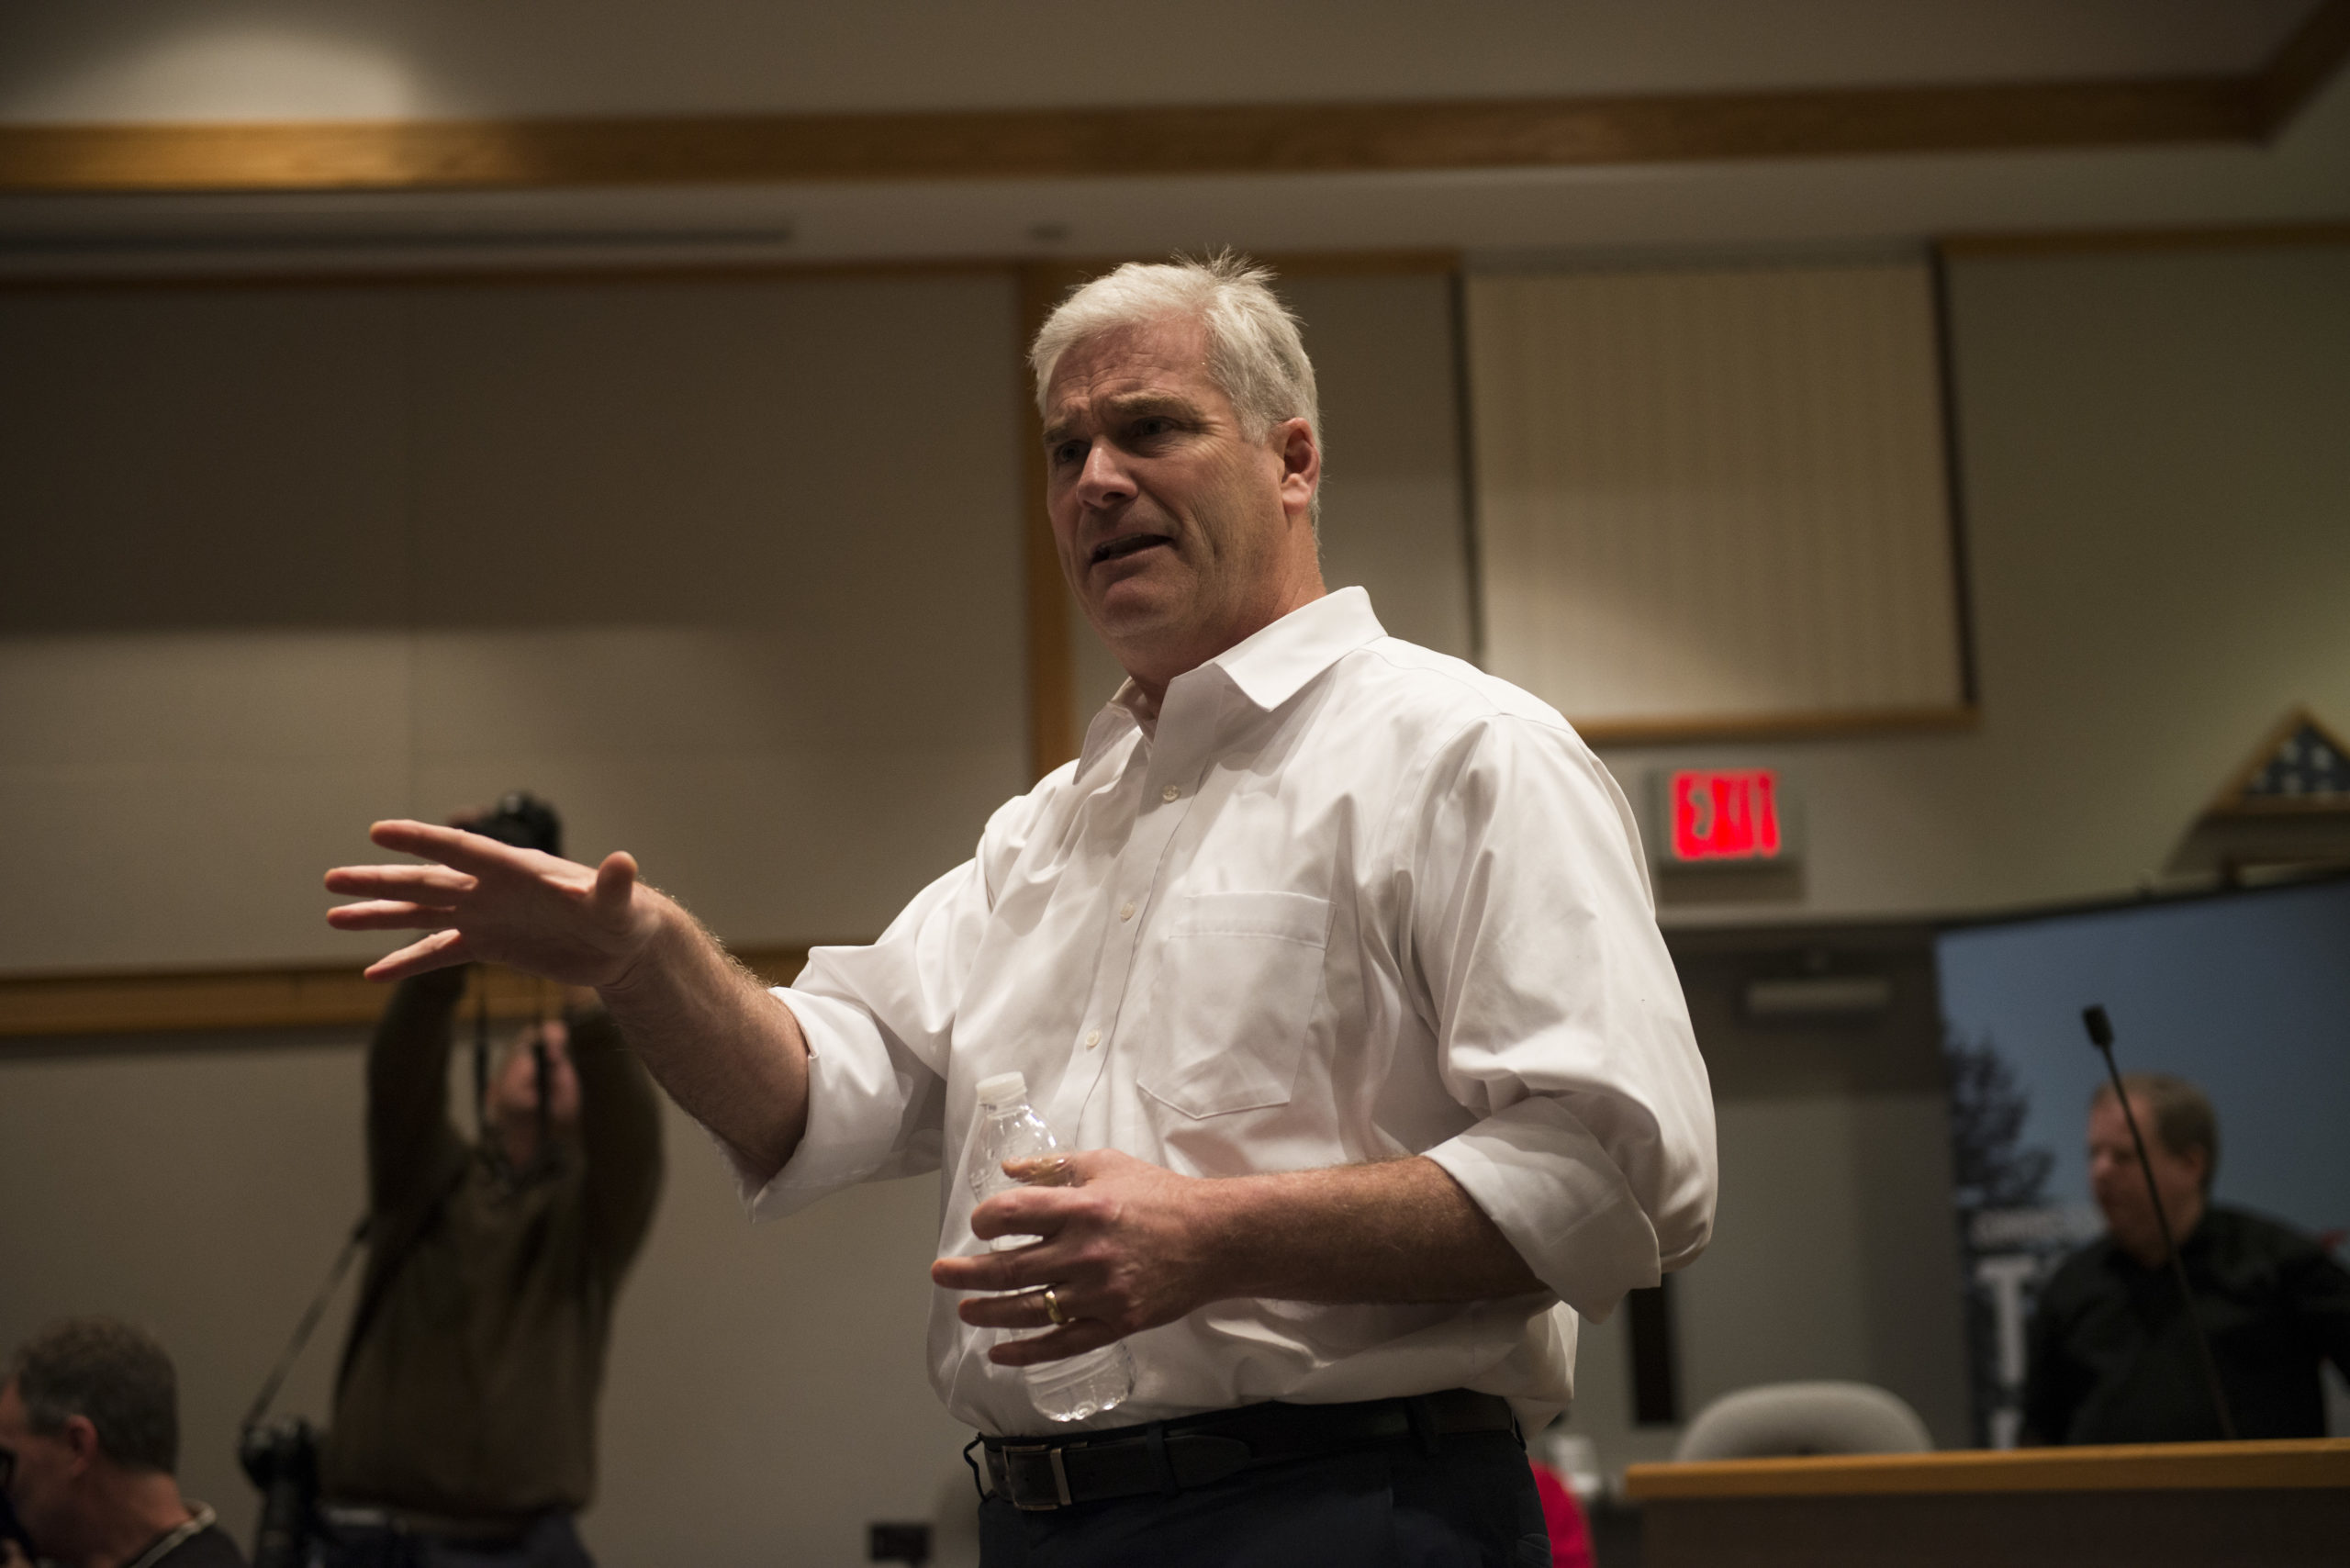 Rep Tom Emmer (R-MN) responds to a question at a town hall meeting on February 22, 2017 in Sartell, Minnesota. Emmer was asked questions ranging from health care, immigration, to education policy.(Photo by Stephen Maturen/Getty Images)